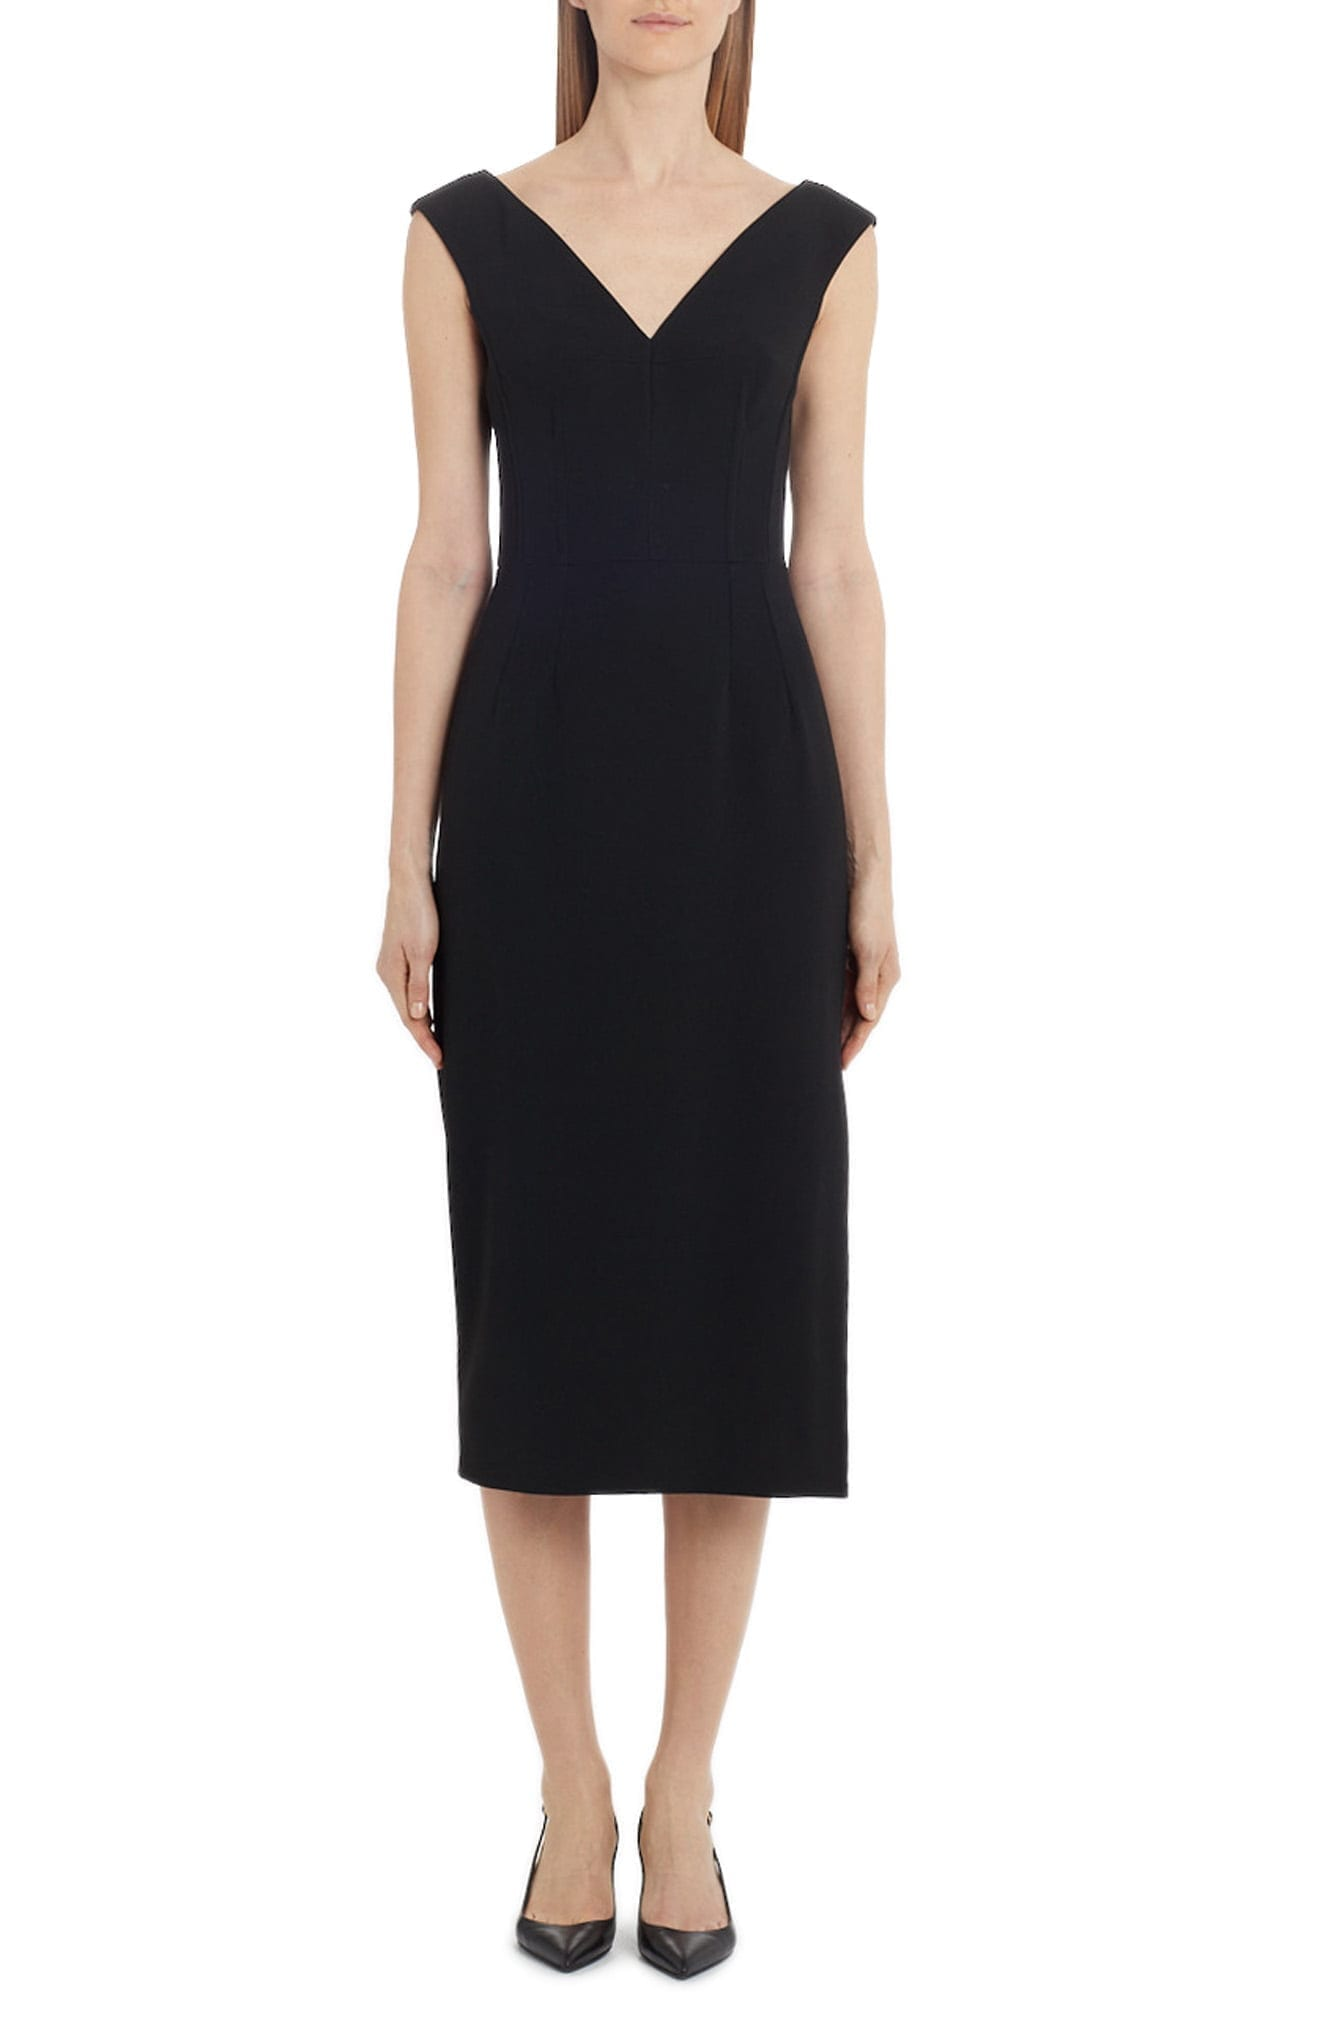 DOLCE&GABBANA Stretch Crepe Midi Sheath Dress